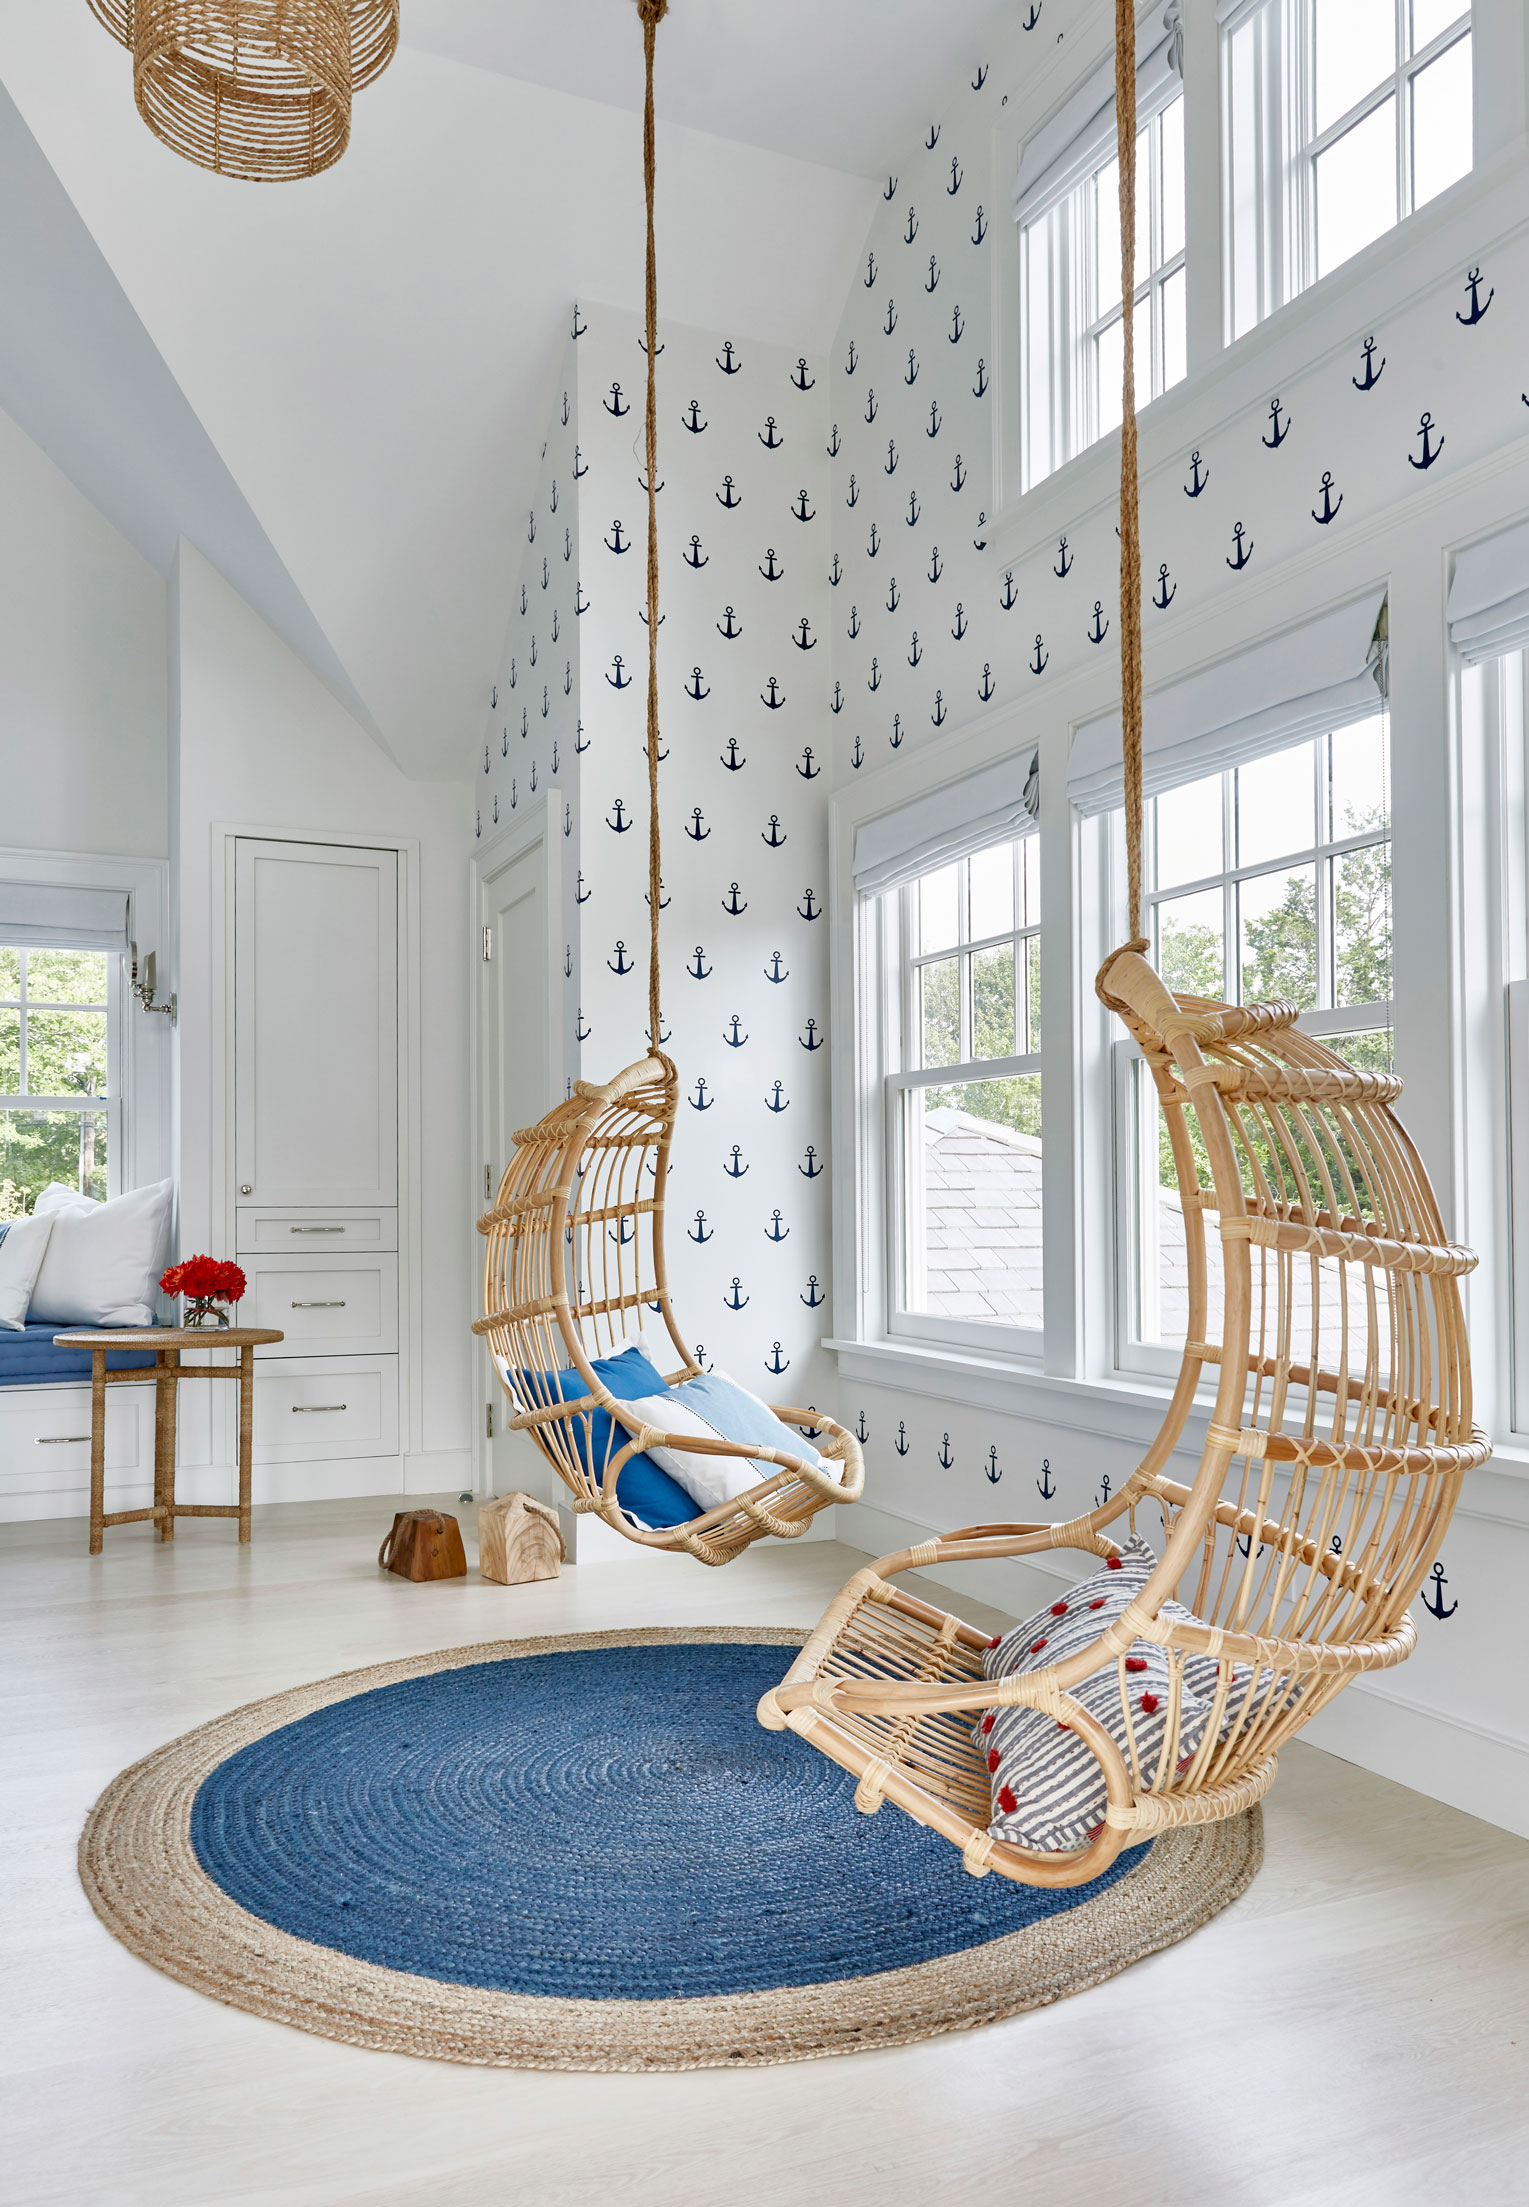 Jungalow hanging chair.jpg